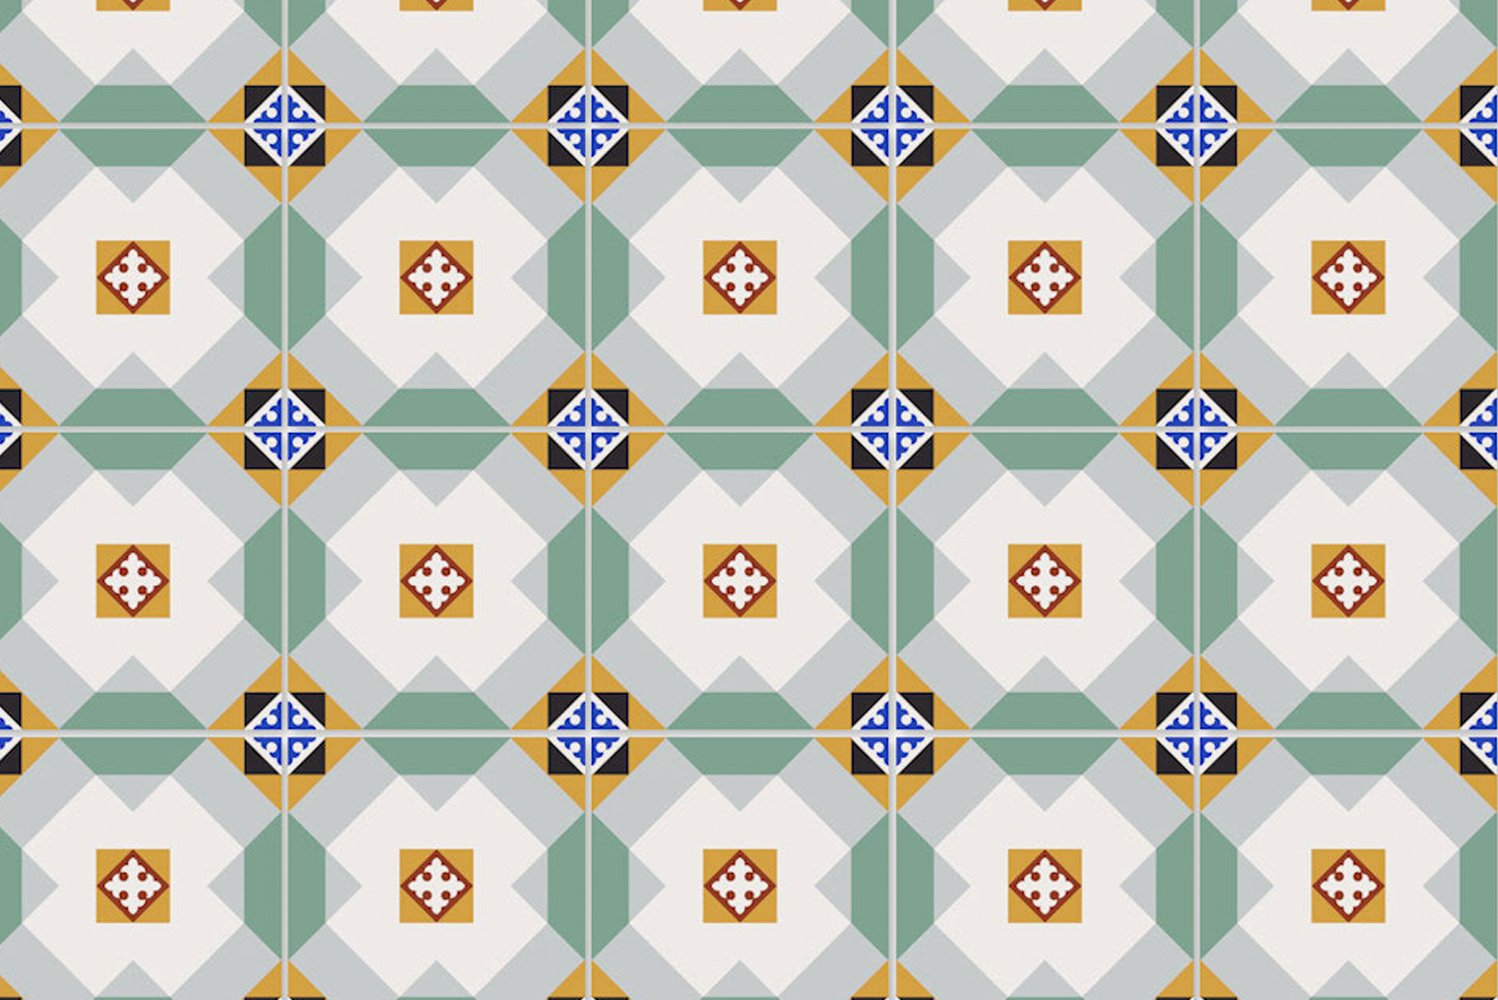 The collection is available in 20 patterns presented in colorways exactly or similar to those seen on historical Cuban floors and walls.